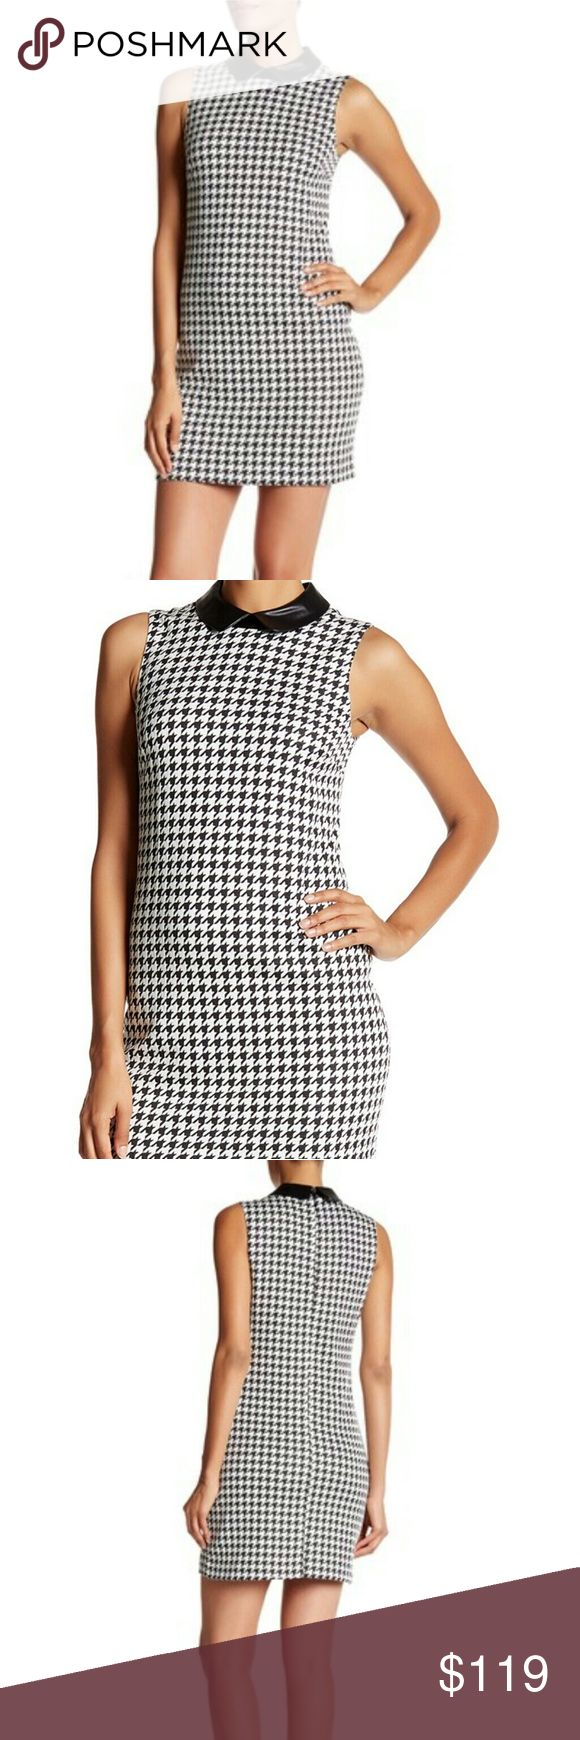 """💕CeCe Cynthia Steffe Sleeveless Houndstooth Dress Super sexy yet professional!!! Great for work or after hours!  6=About 33"""" shoulder to hem; about 17"""" pit to pit 8=About 33"""" shoulder to hem; about 18"""" pit to pit 10=About 33.5"""" shoulder to hem; about 19"""" pit to pit 12=About 33.5"""" shoulder to hem; about 20"""" pit to pit  -Allover houndstooth pattern with faux leather collar -Peter Pan collar -Sleeveless -Concealed back zip closure -Lined -Polyester/cotton/faux leather -Hand wash Cynthia Steffe…"""